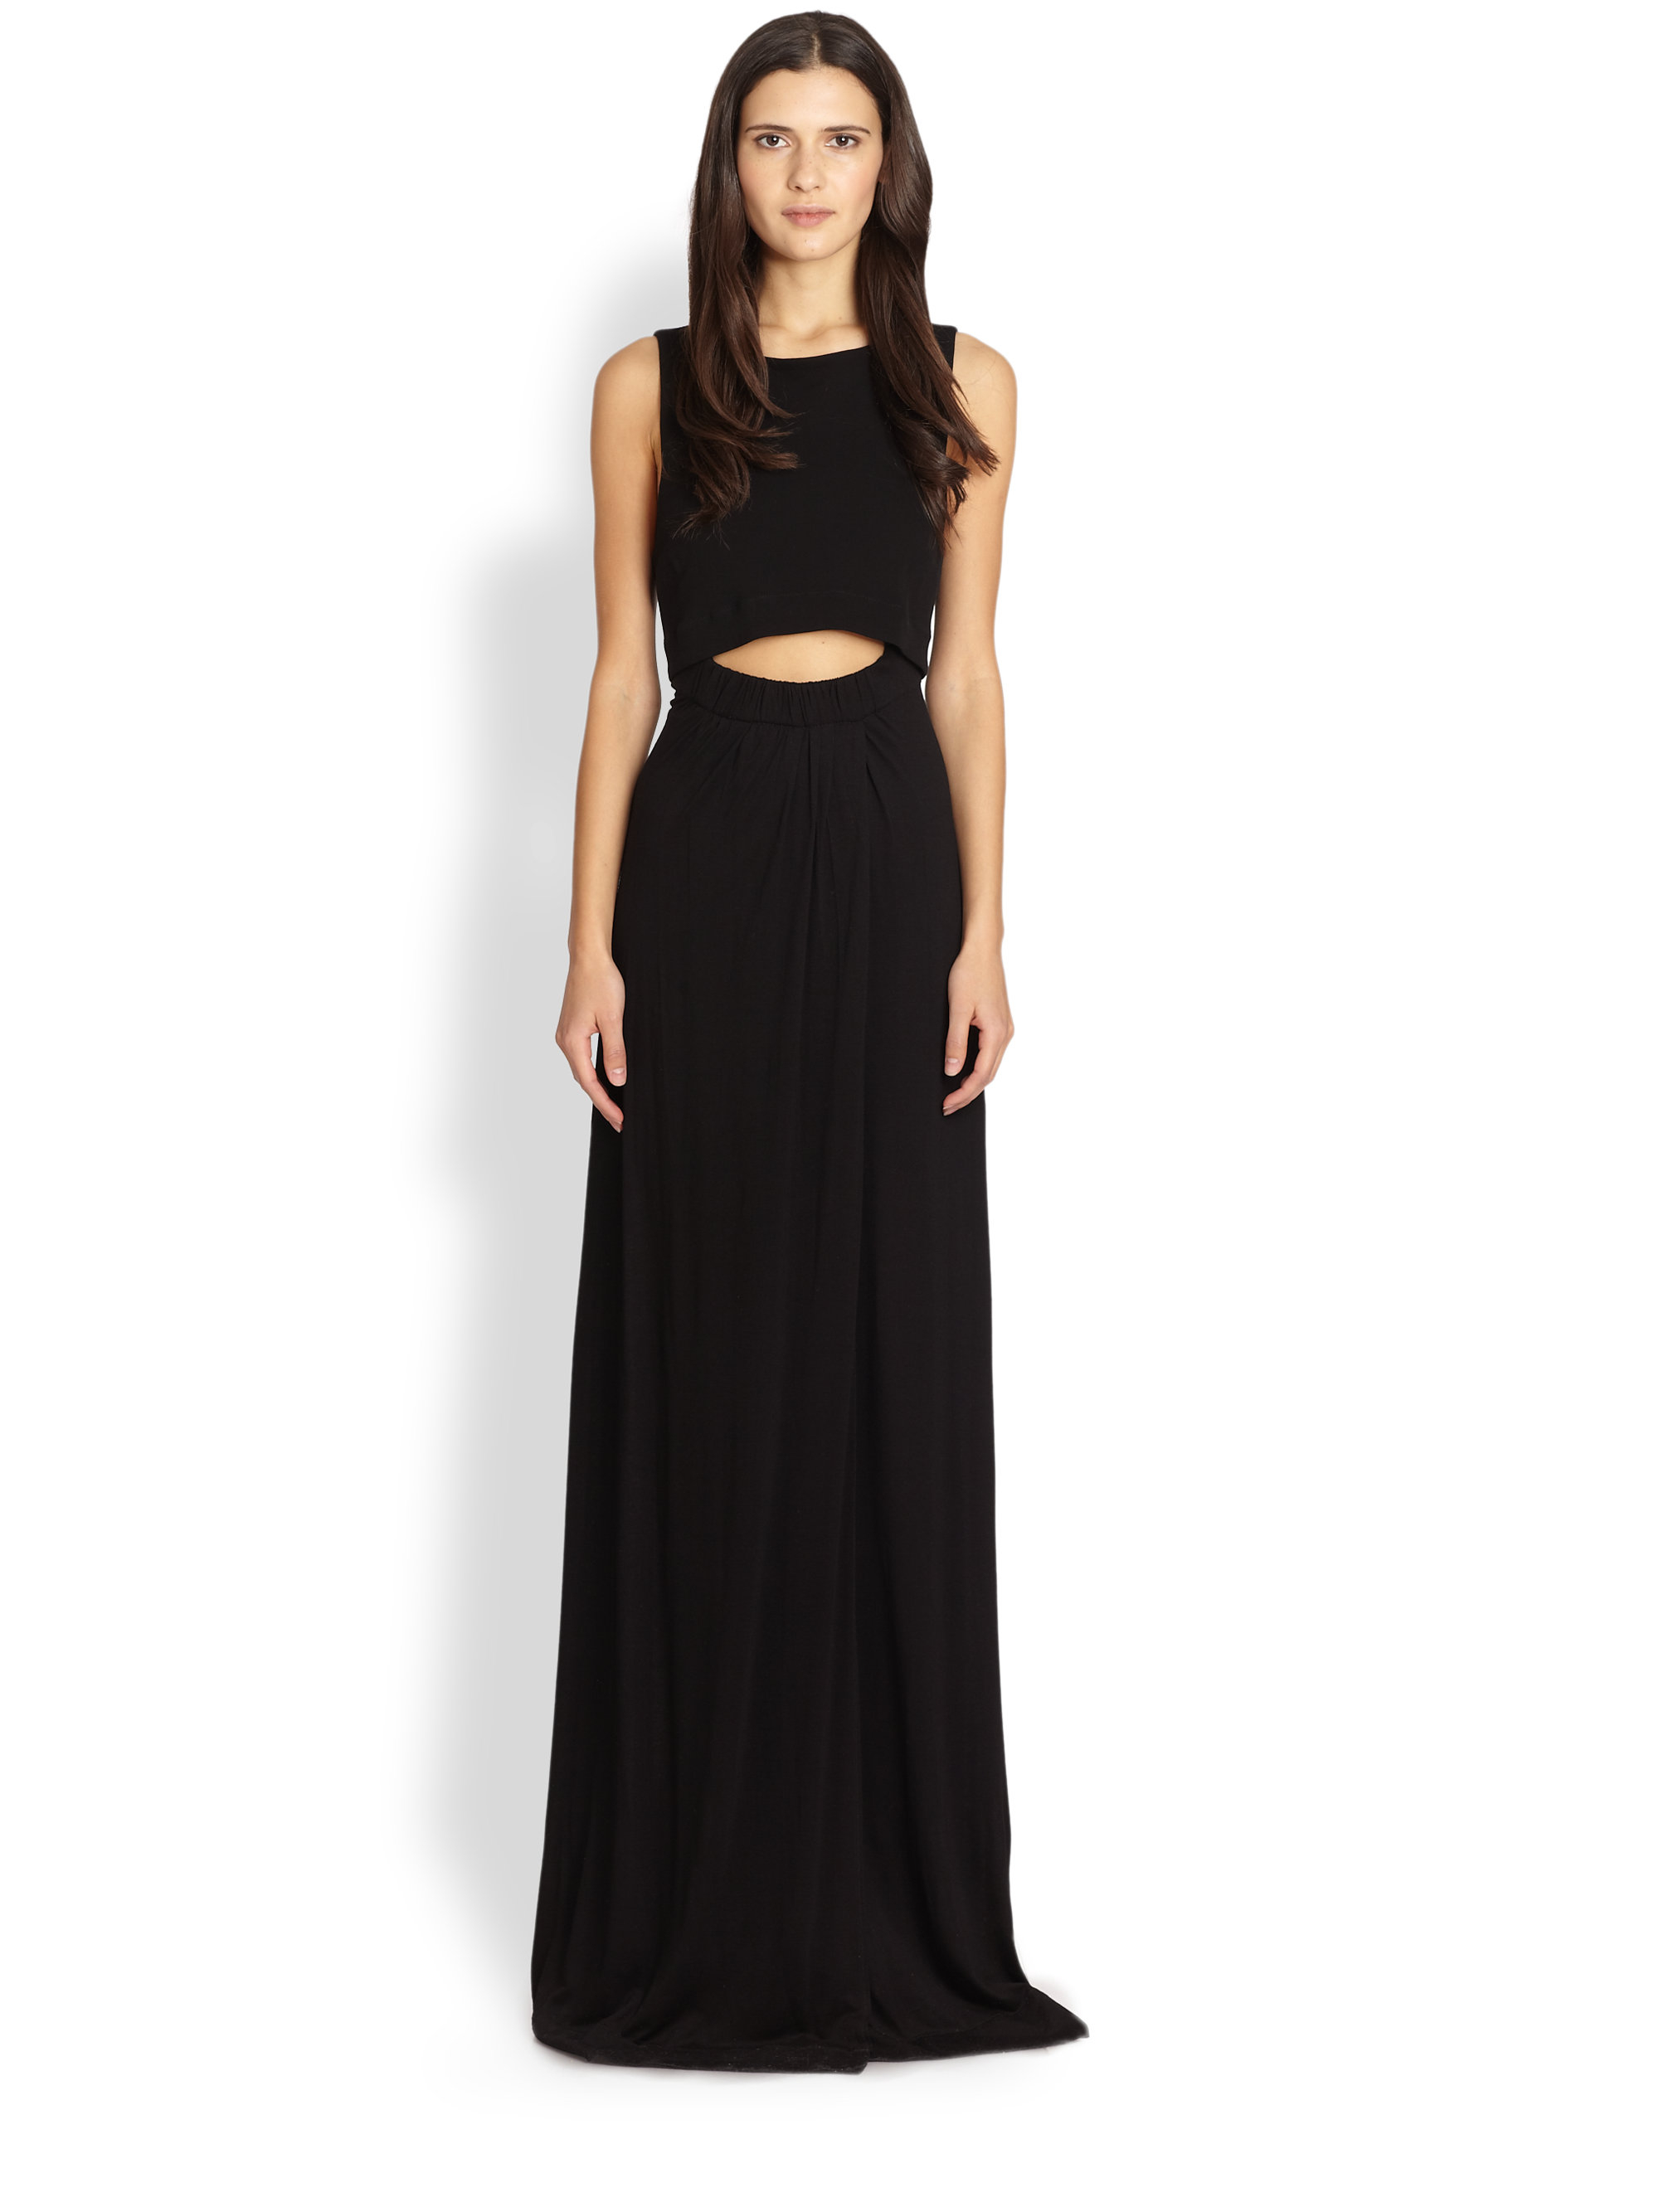 A.l.c. Layeredtop Cutout Maxi Dress in Black | Lyst